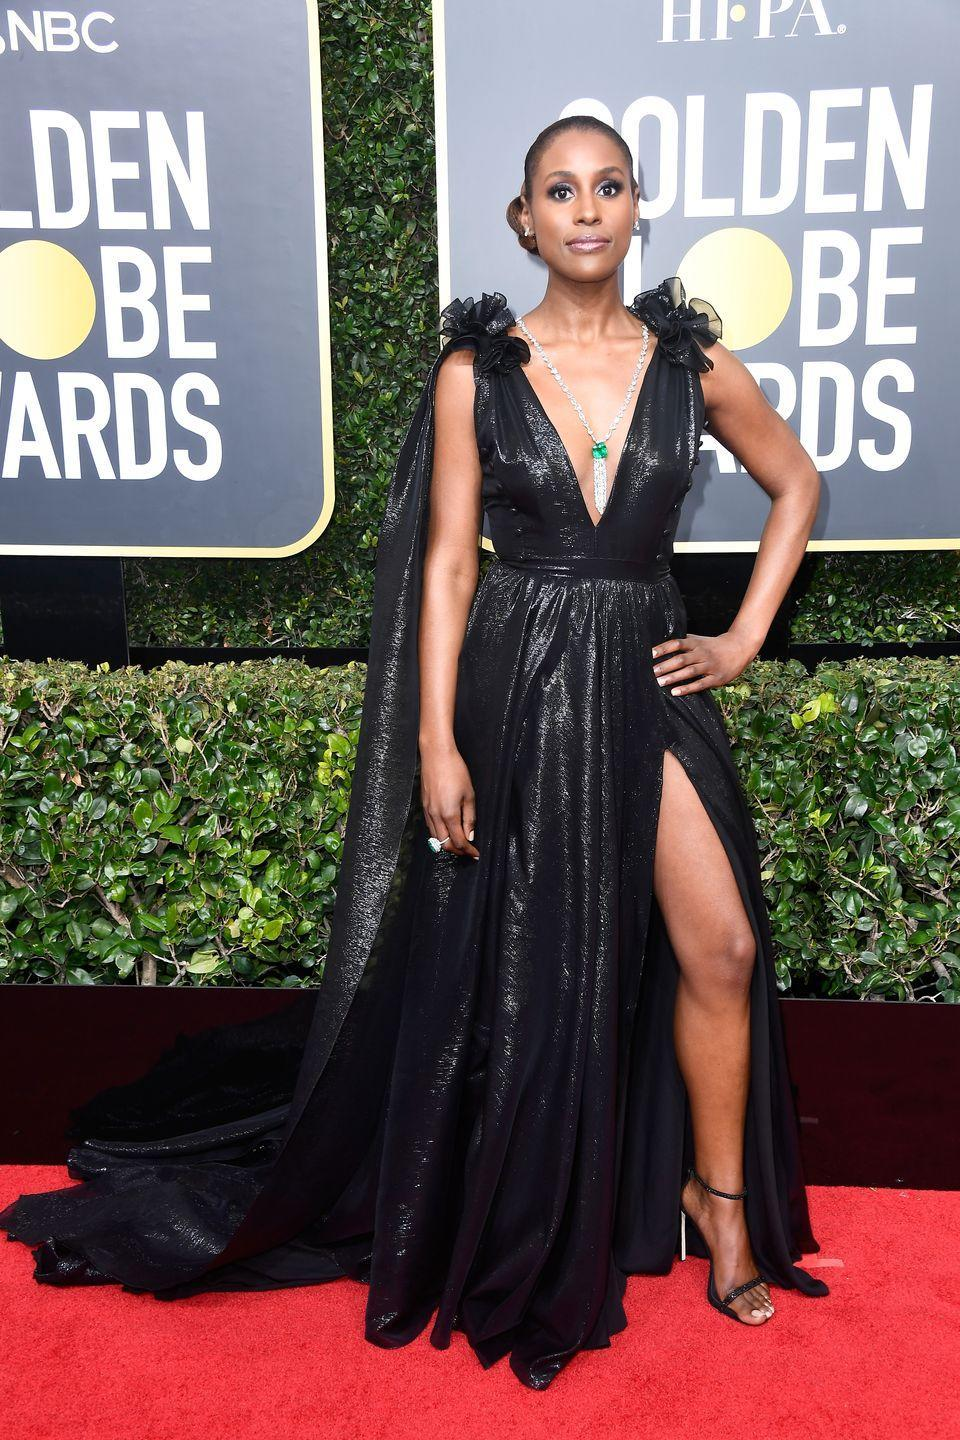 <p>The 2018 ceremony called for all actresses to wear black in solidarity with the #TimesUp movement–but that didn't mean they were boring as the Insecure actress proved in this dramatic Prabal Gurung gown. </p>